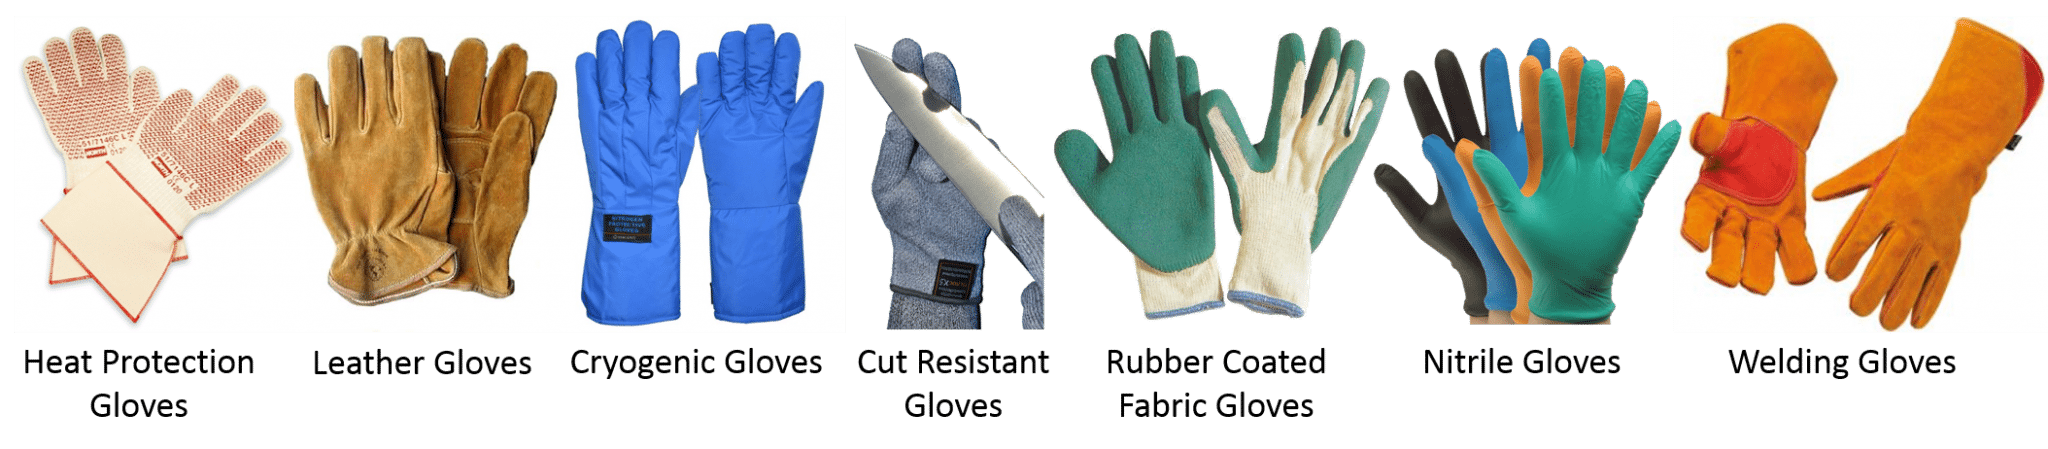 image of different types of gloves